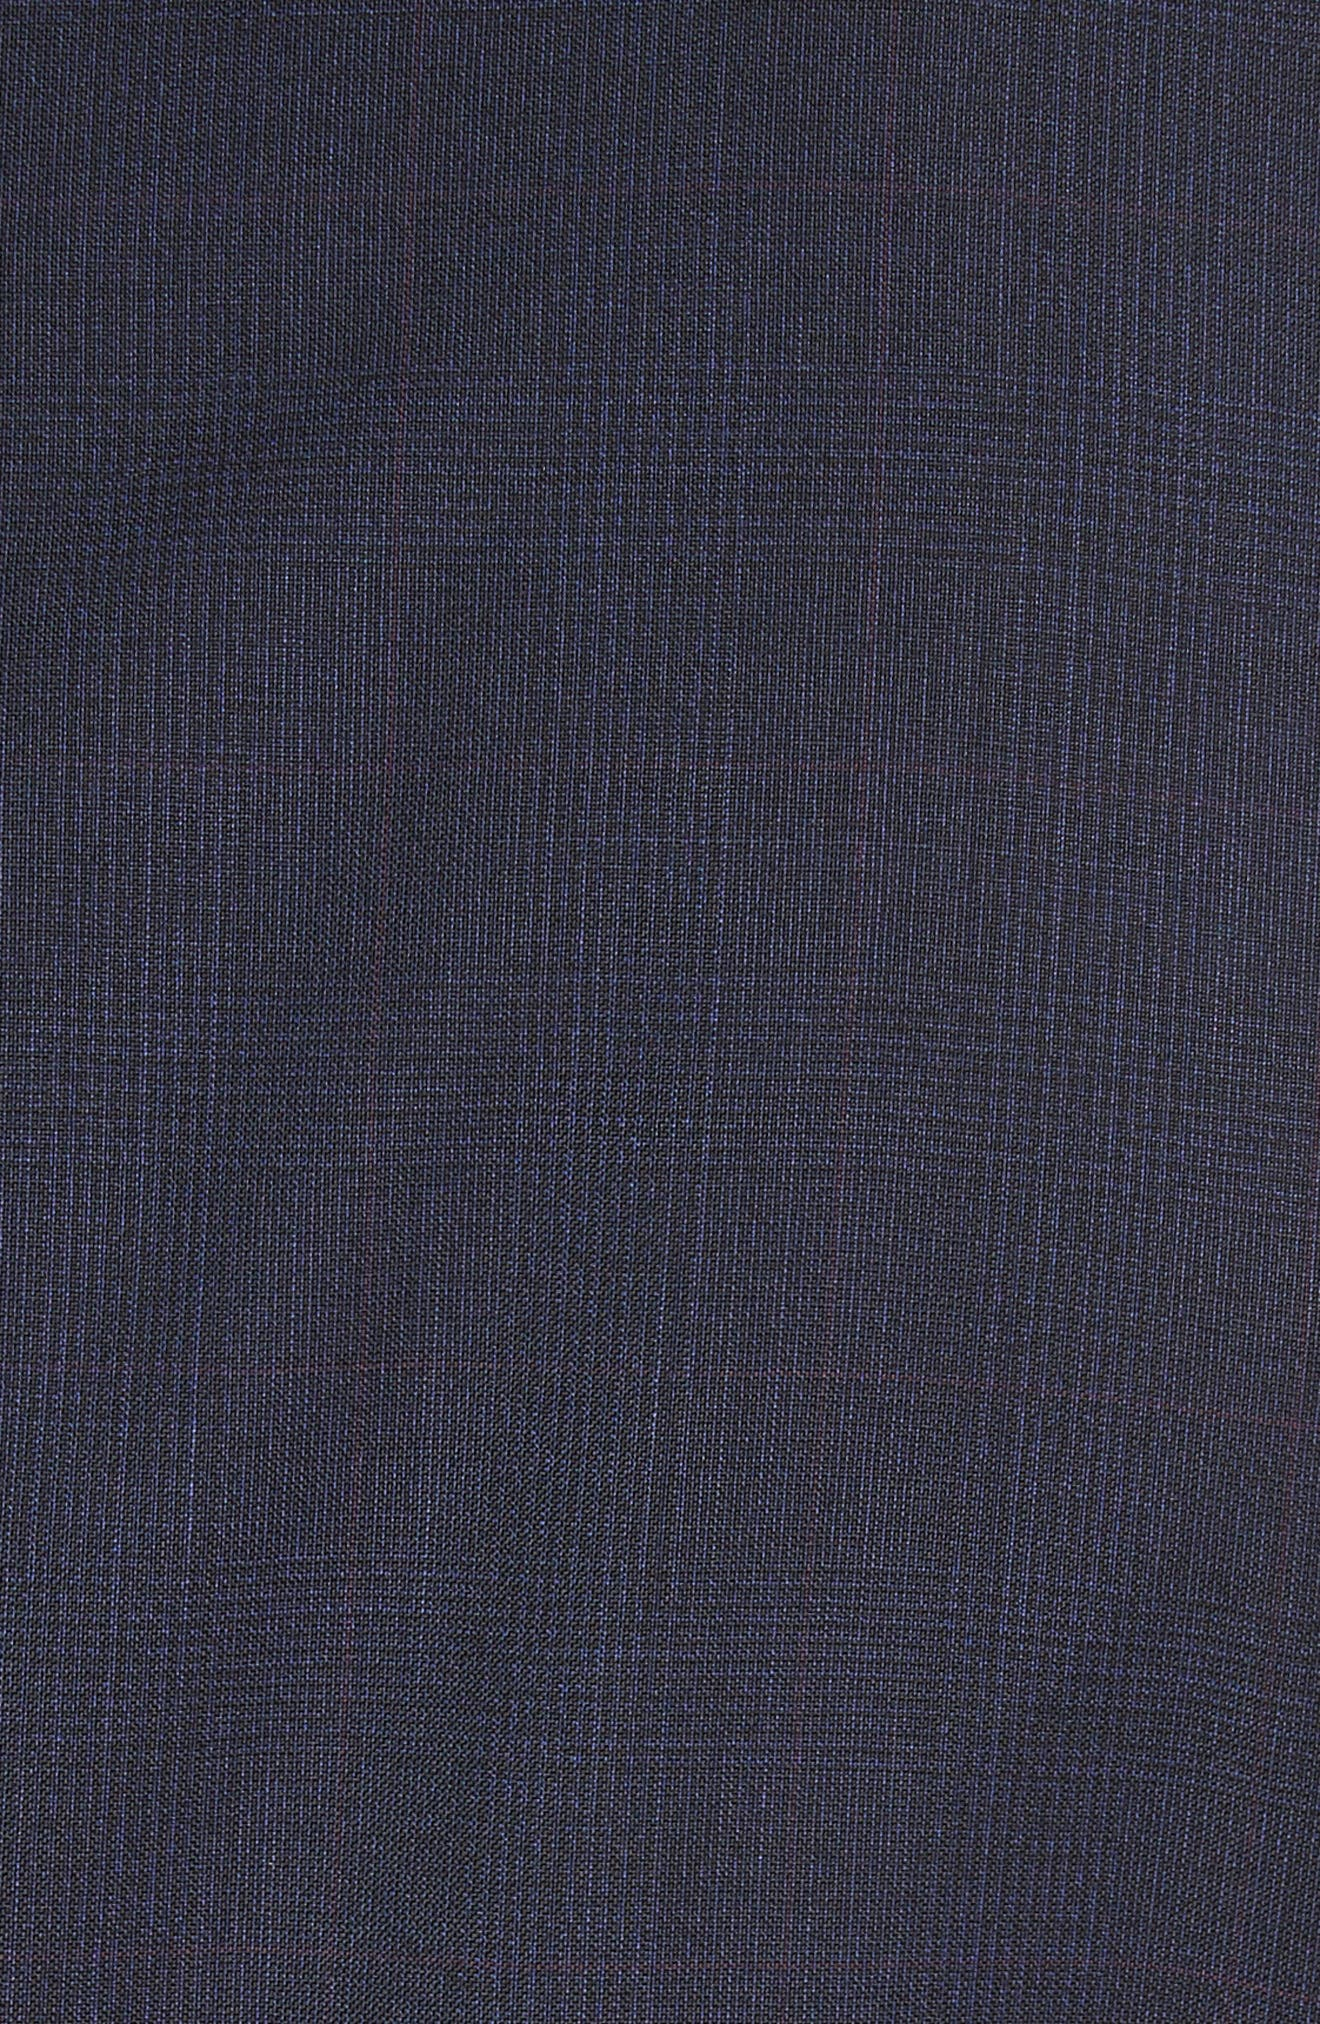 Classic Fit Check Wool Suit,                             Alternate thumbnail 7, color,                             Navy Check